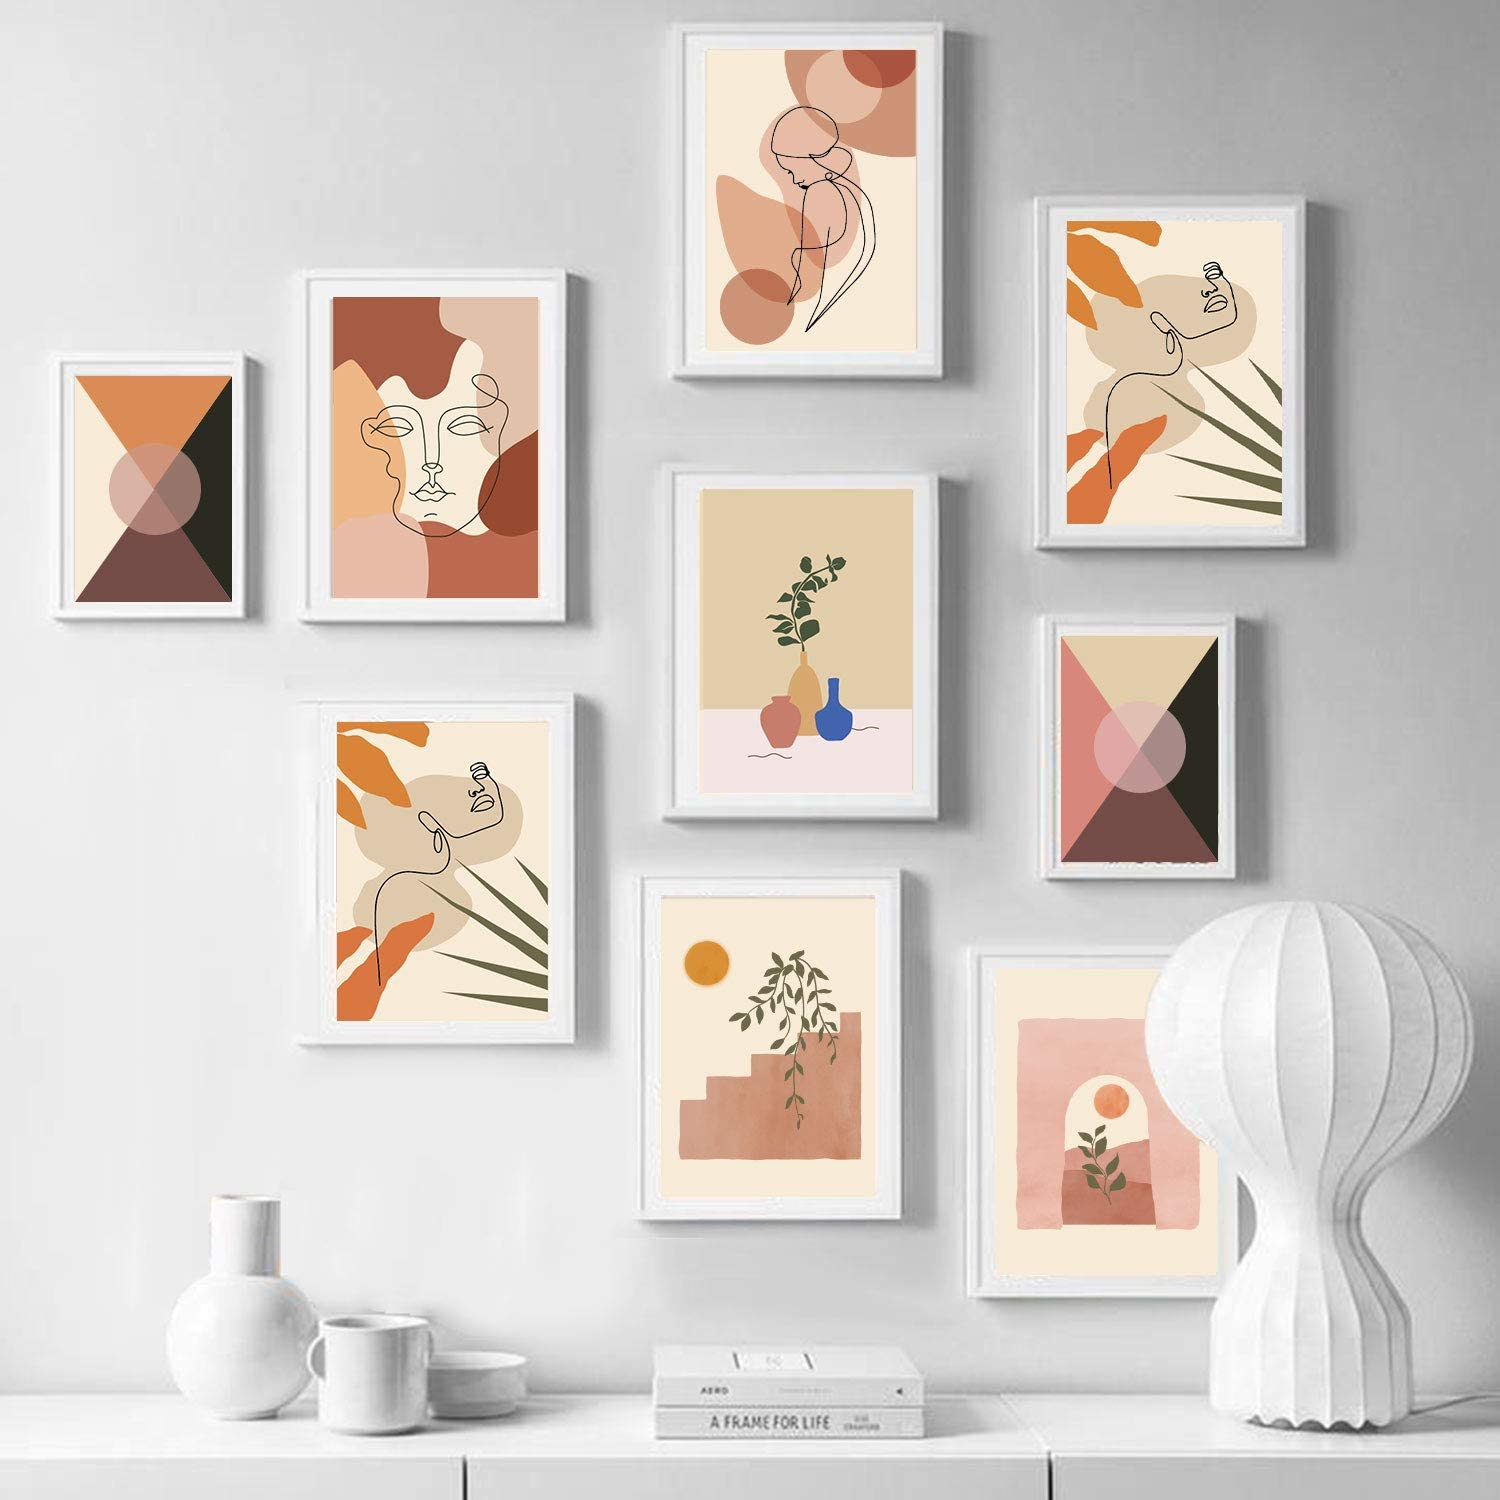 Whaline 6 Pack Mini Abstract Line Art Poster Minimalist Wall Art Prints Waterproof Woman Face Drawing Modern Aesthetic Room Decor for Photo Frame Girls Women Home Bedroom College Dorm 6.48 x 9.21